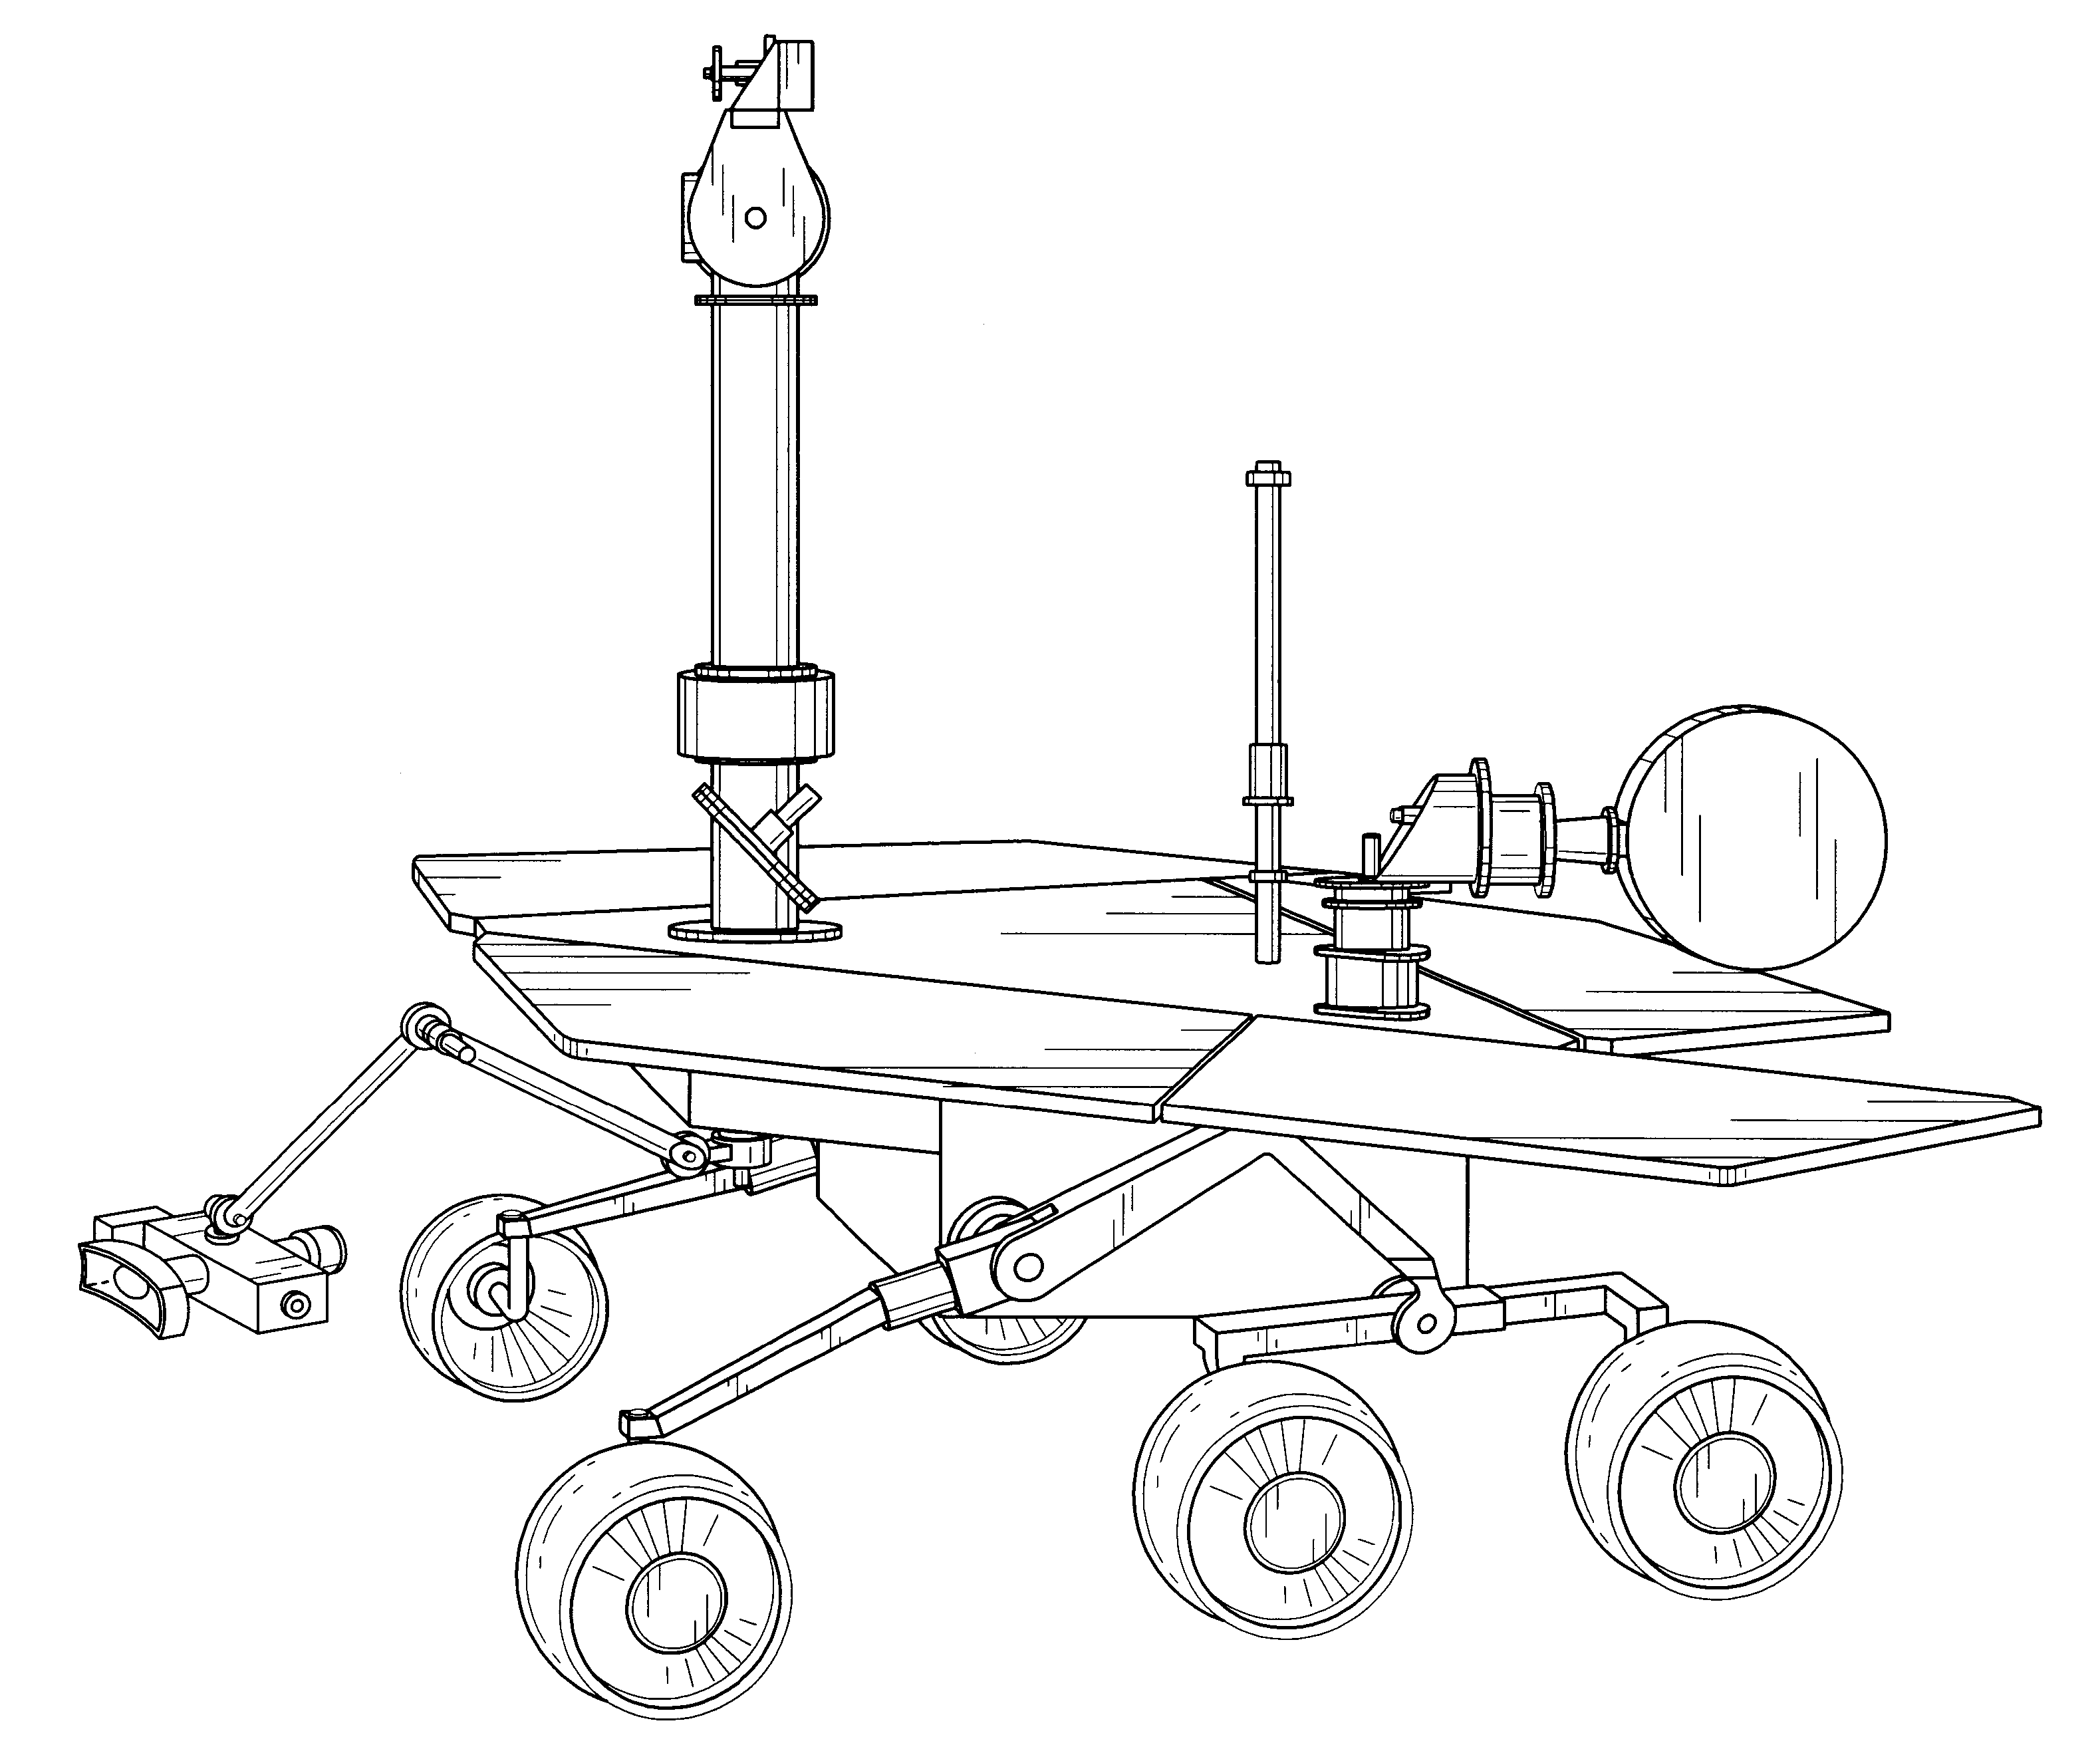 mars curiosity rover technical drawing - photo #19